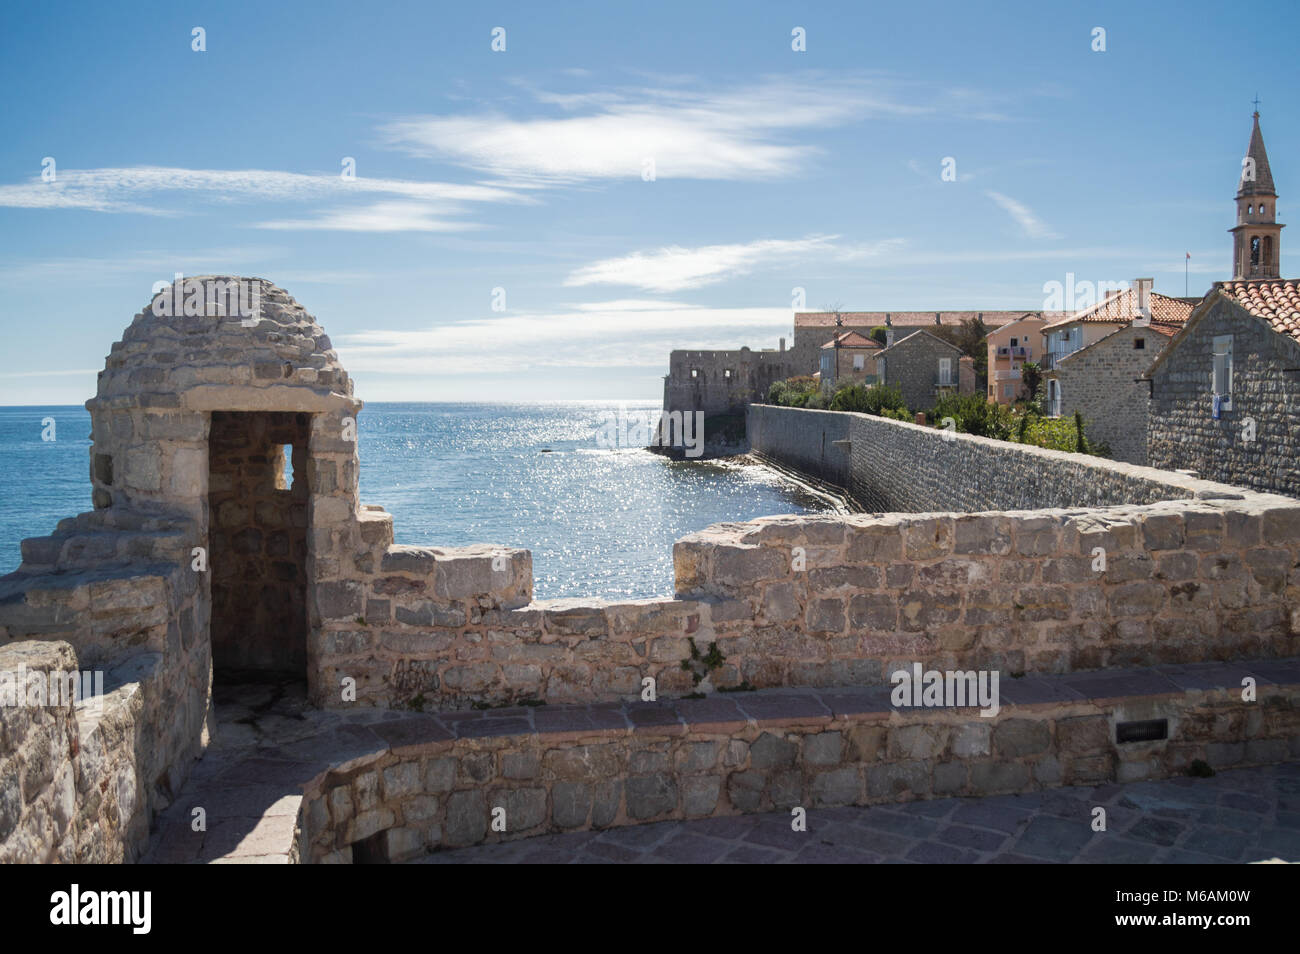 Budva Citadel with Panoramic View onto Adriatic Sea and Old Town, Montenegro - Stock Image